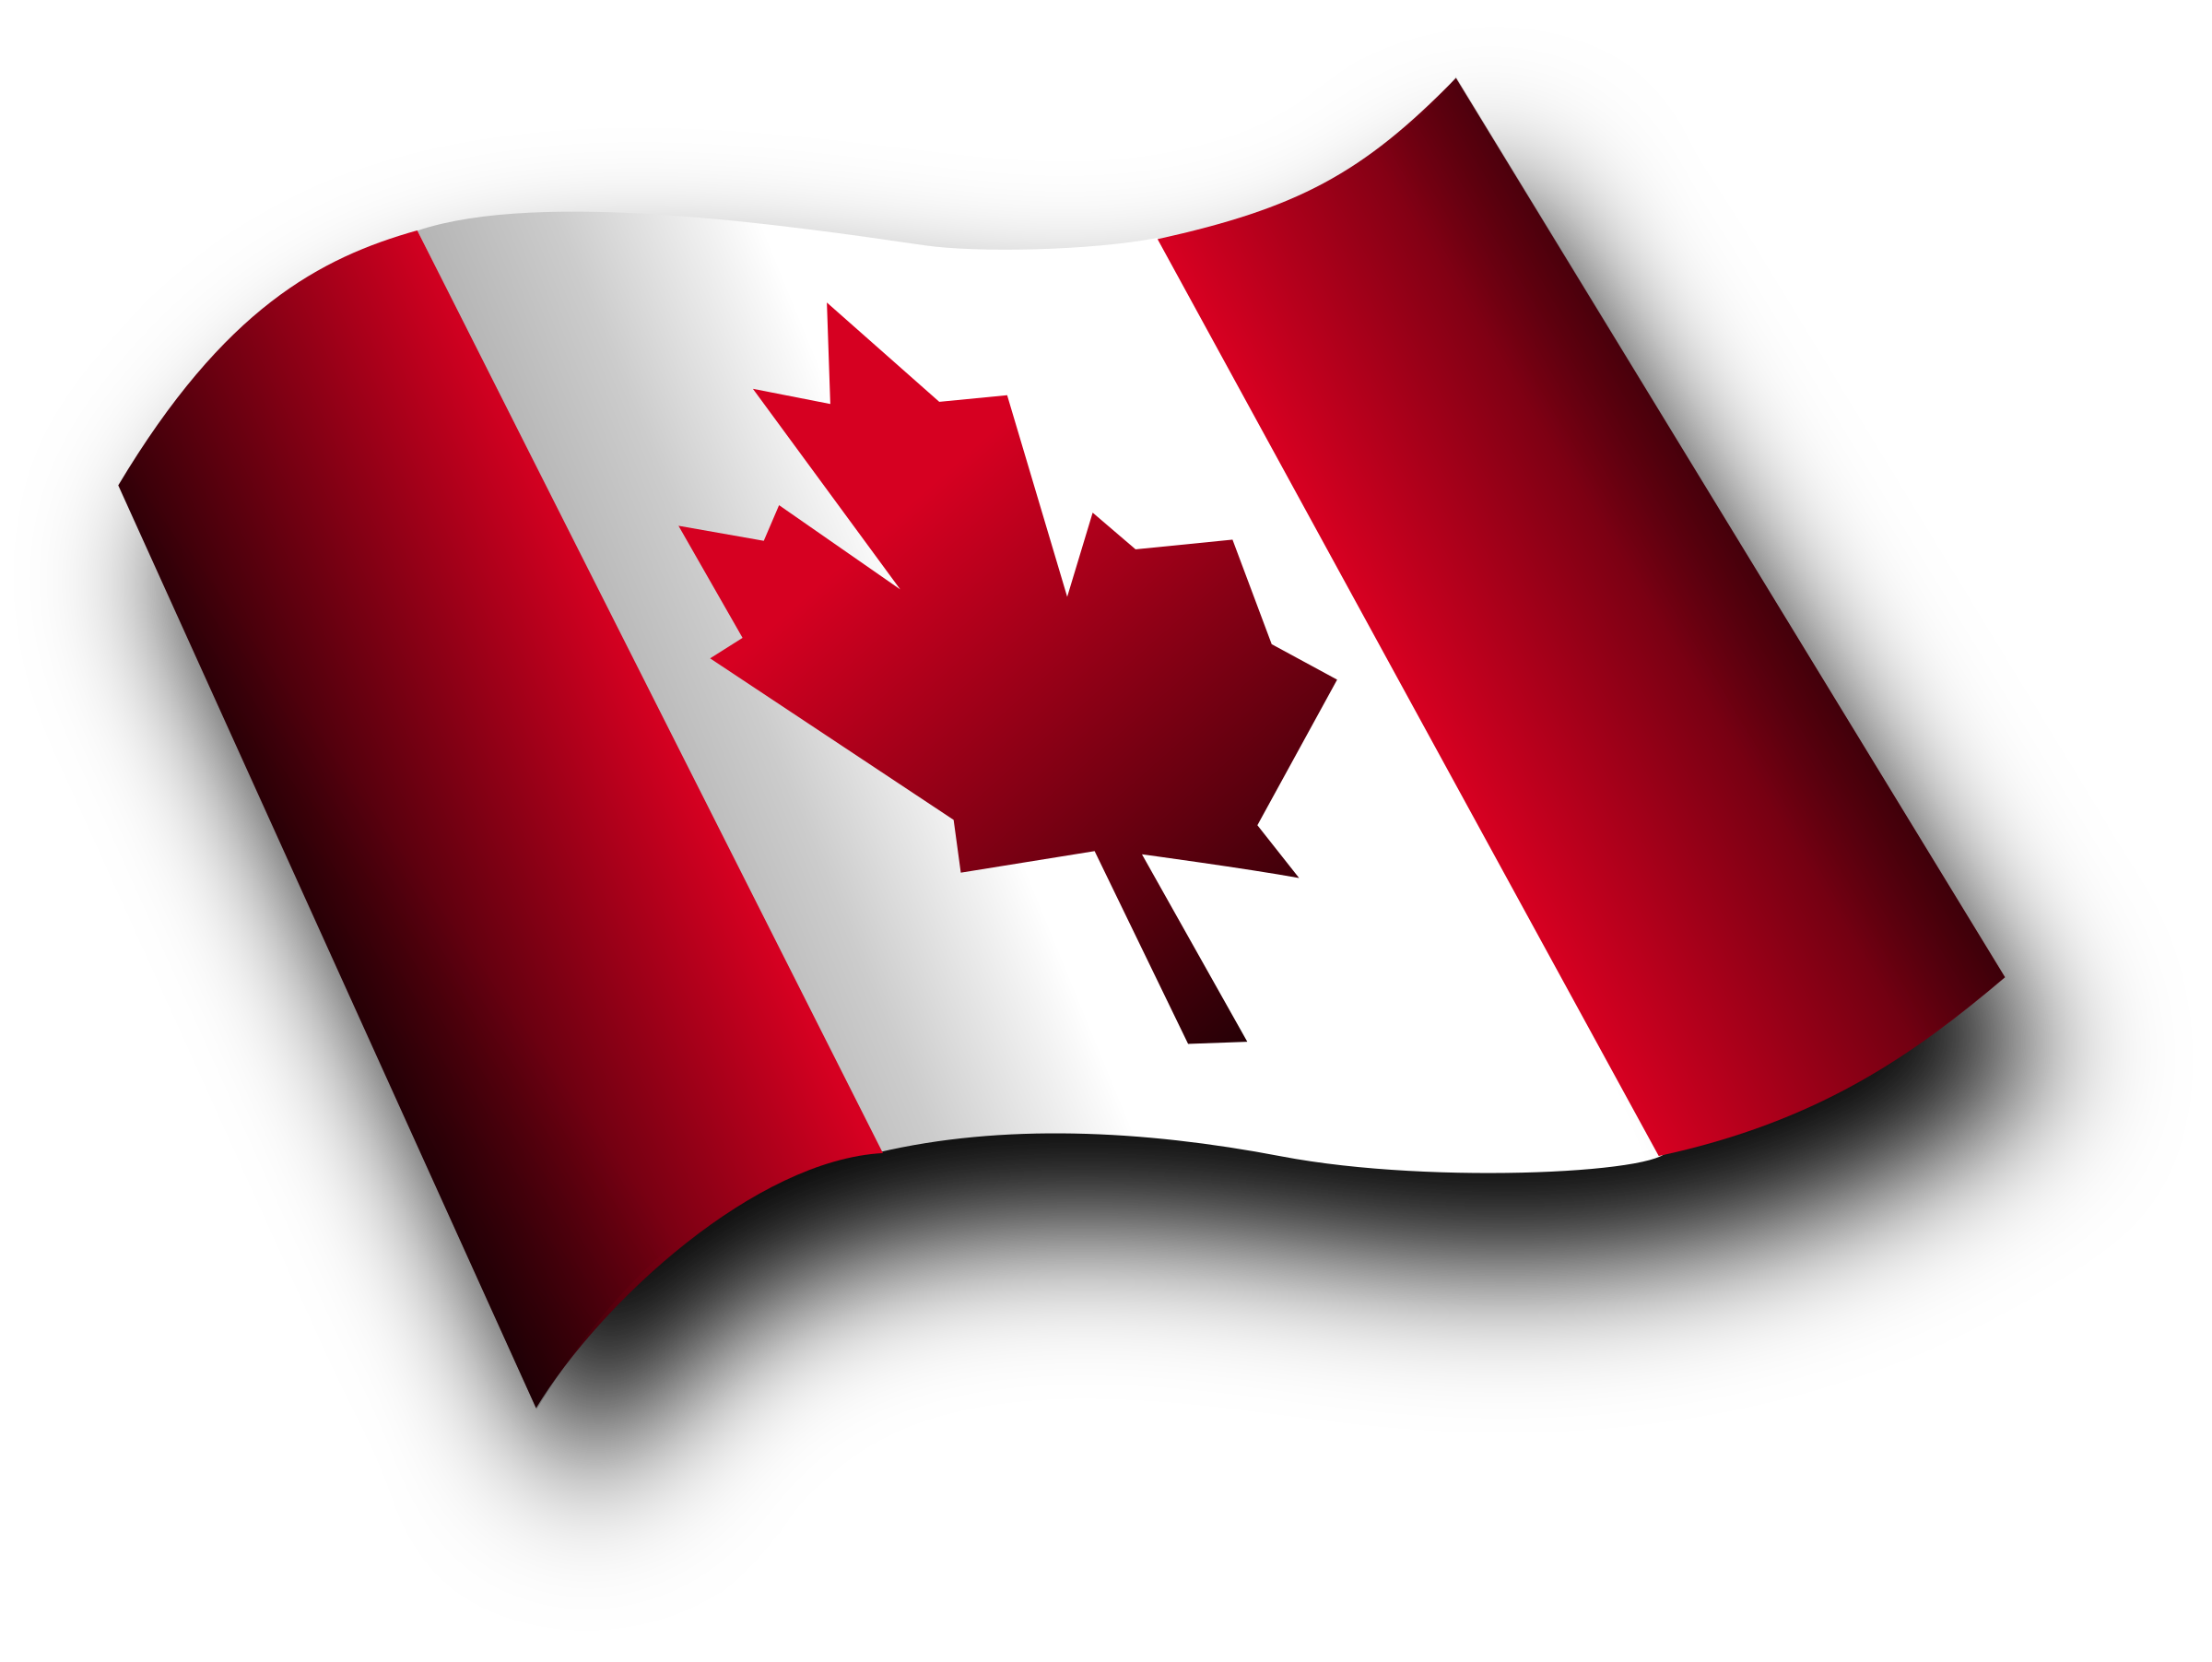 Canadian Flag 3 by Merlin2525